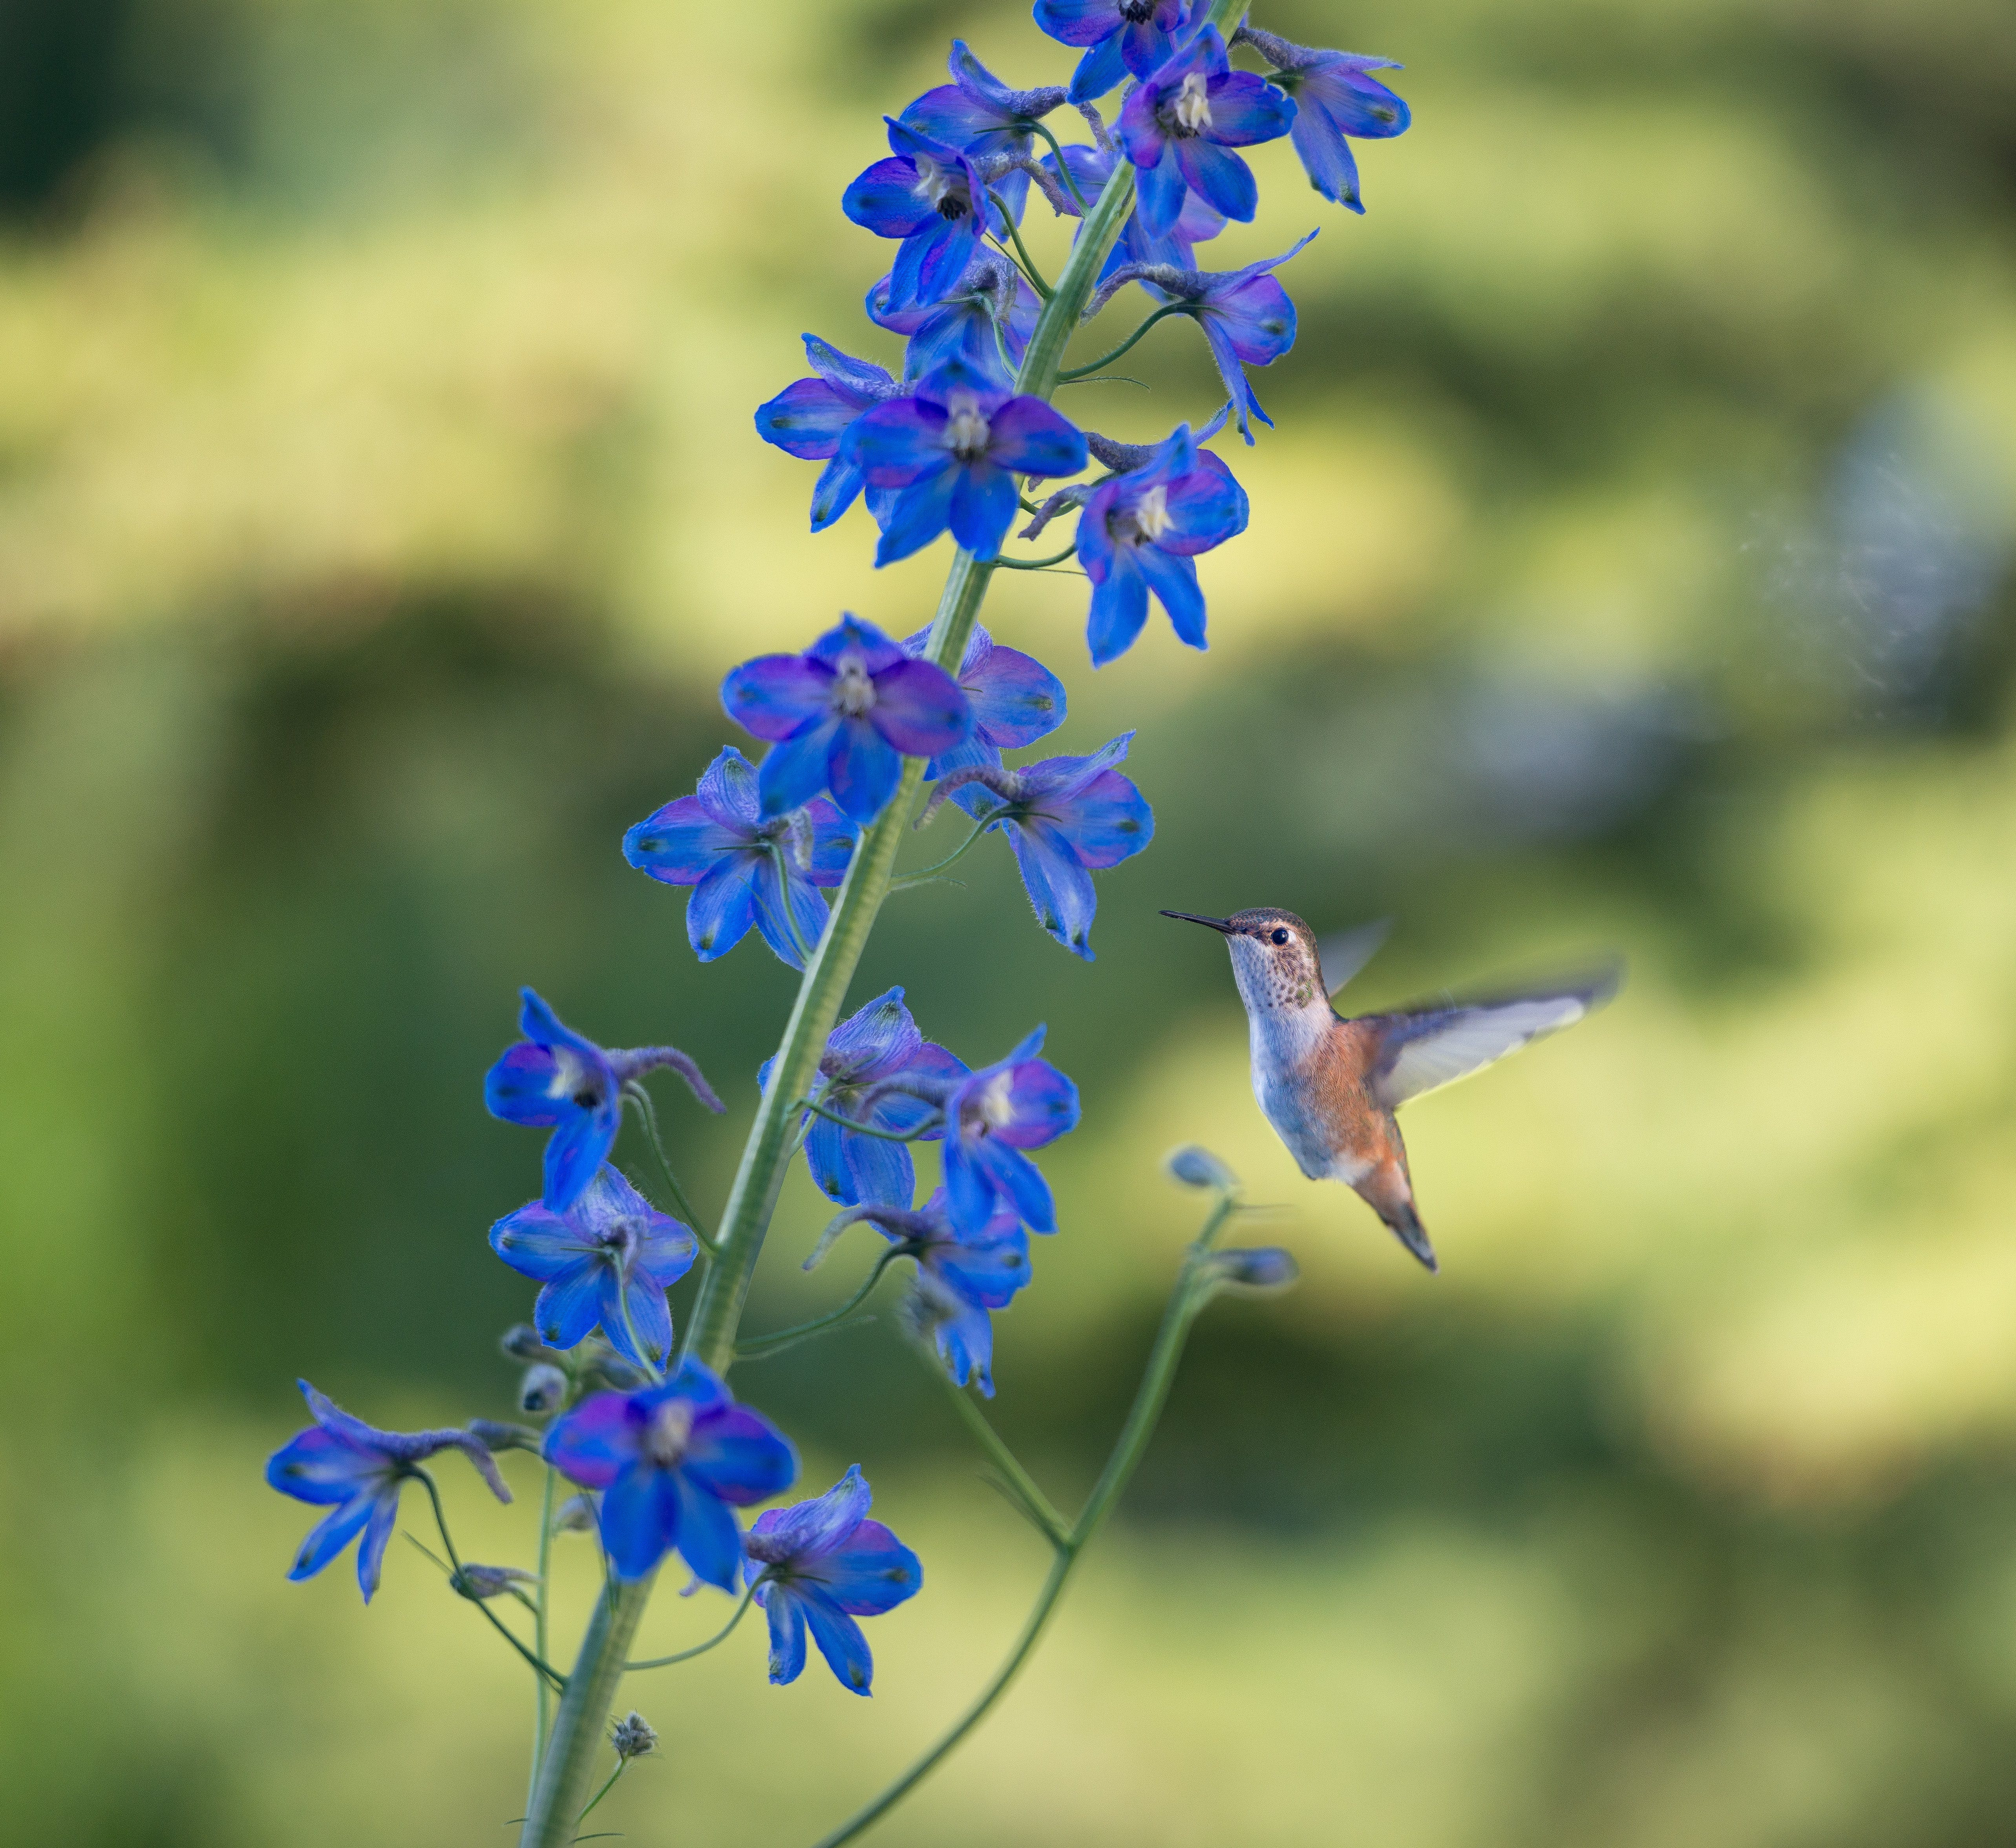 Free stock photo of Summertime Blue